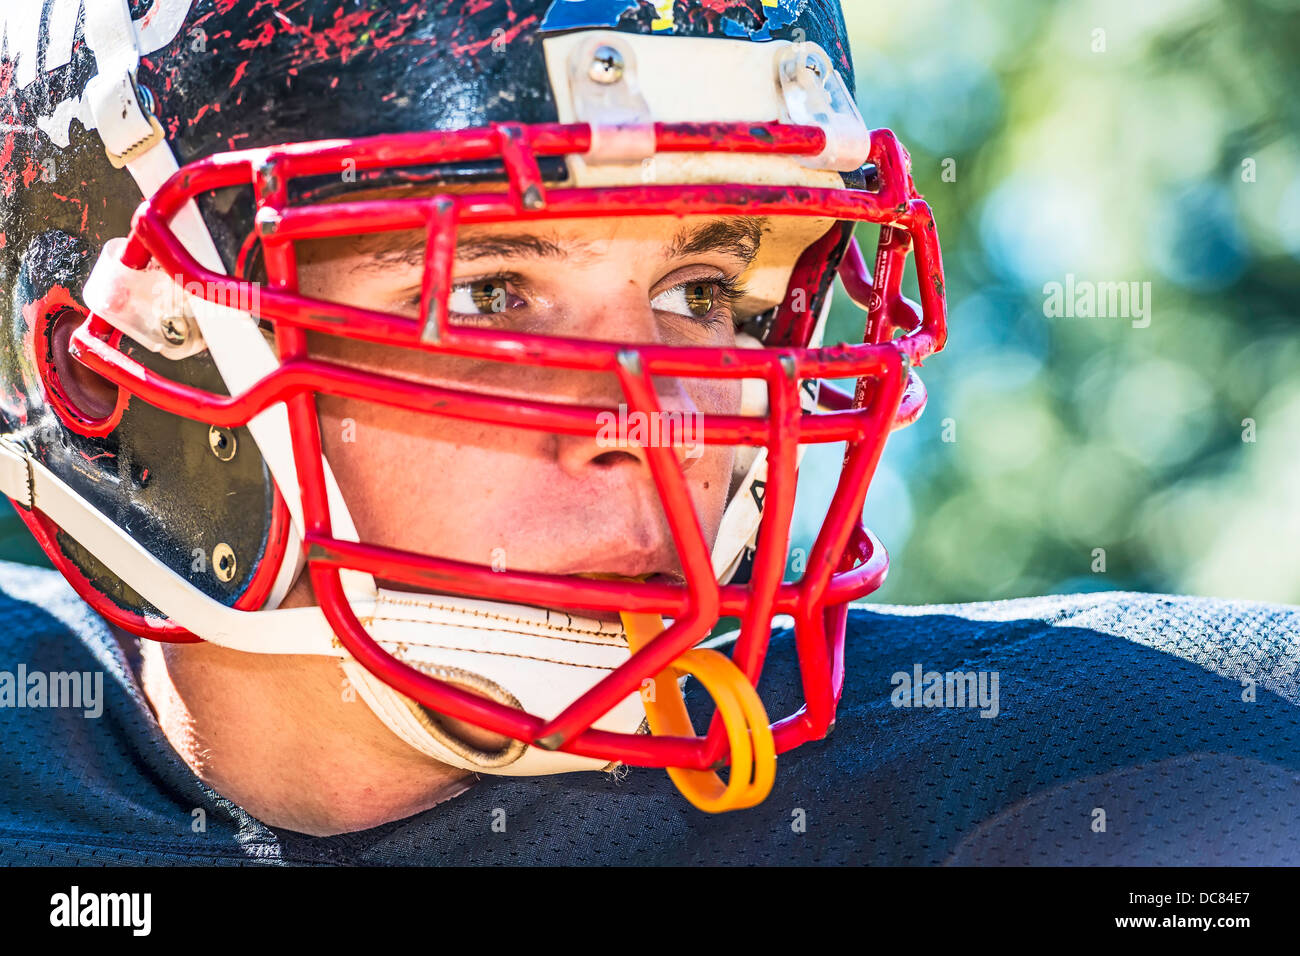 Portrait of a American Football Player with a heavily worn helmet - Stock Image